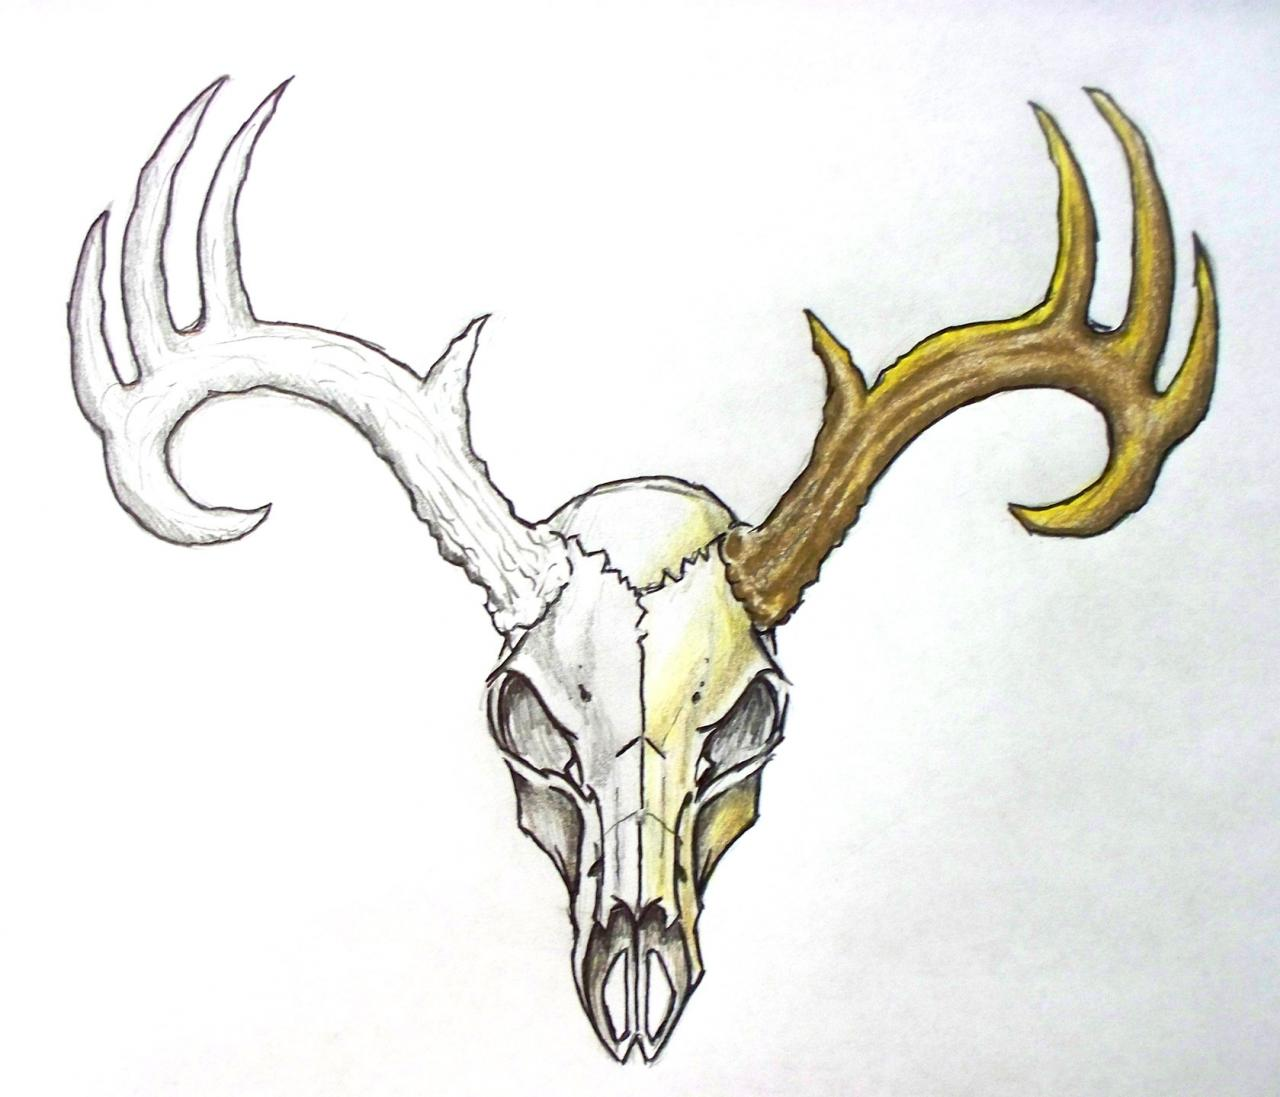 deer skull drawing at free for personal use deer skull drawing of your choice. Black Bedroom Furniture Sets. Home Design Ideas